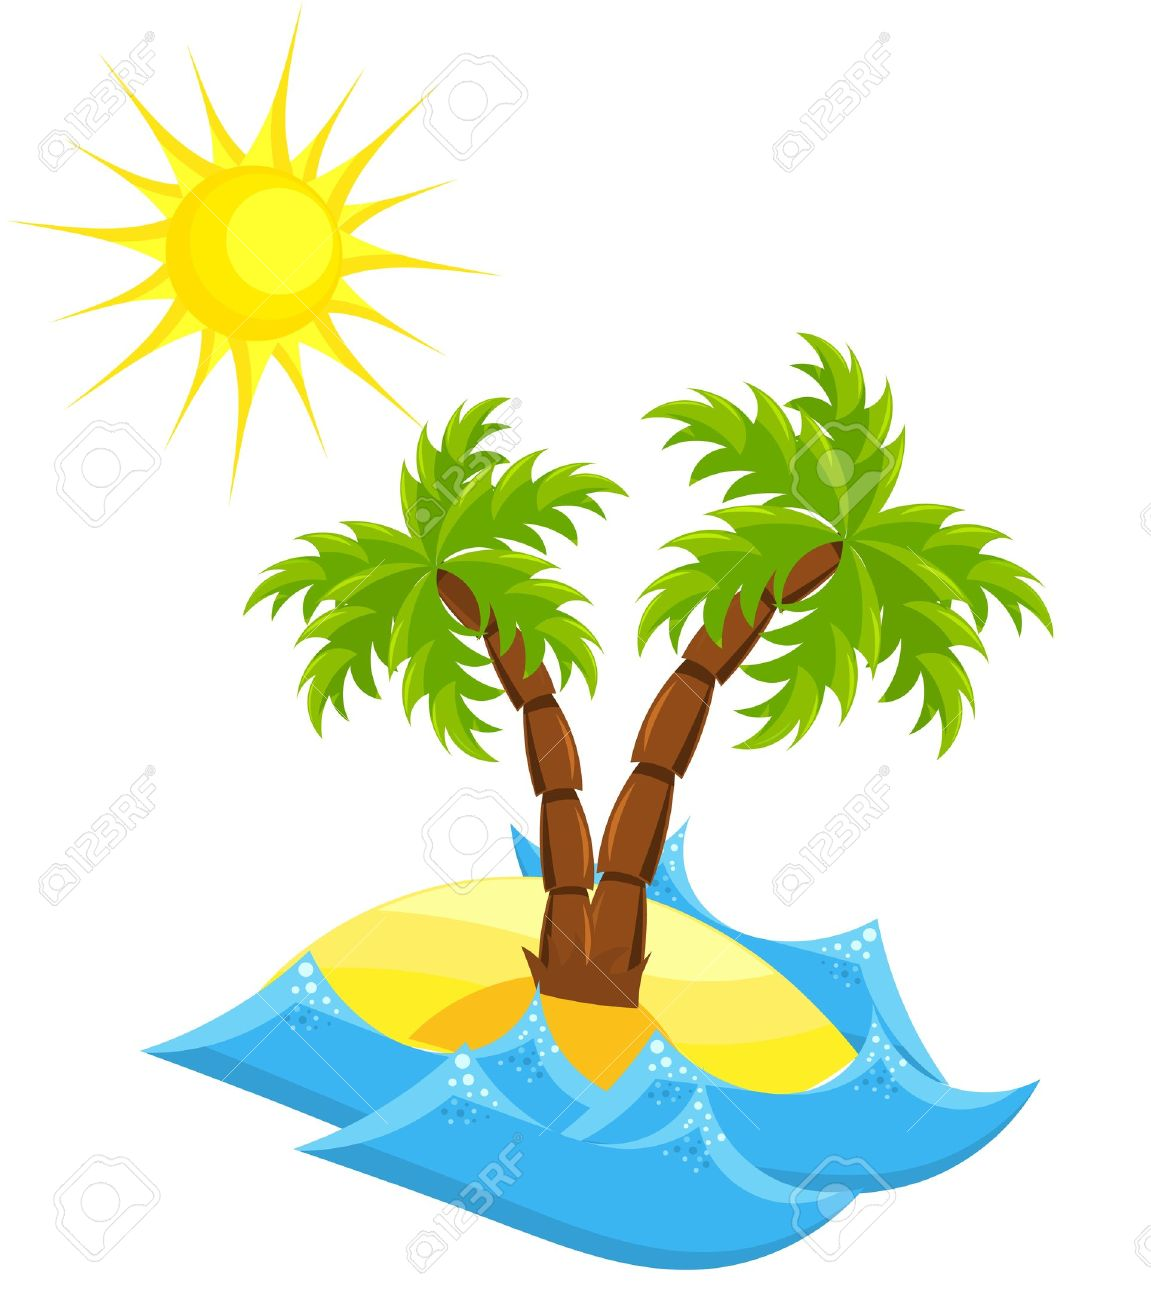 clipart caribbean islands - photo #1